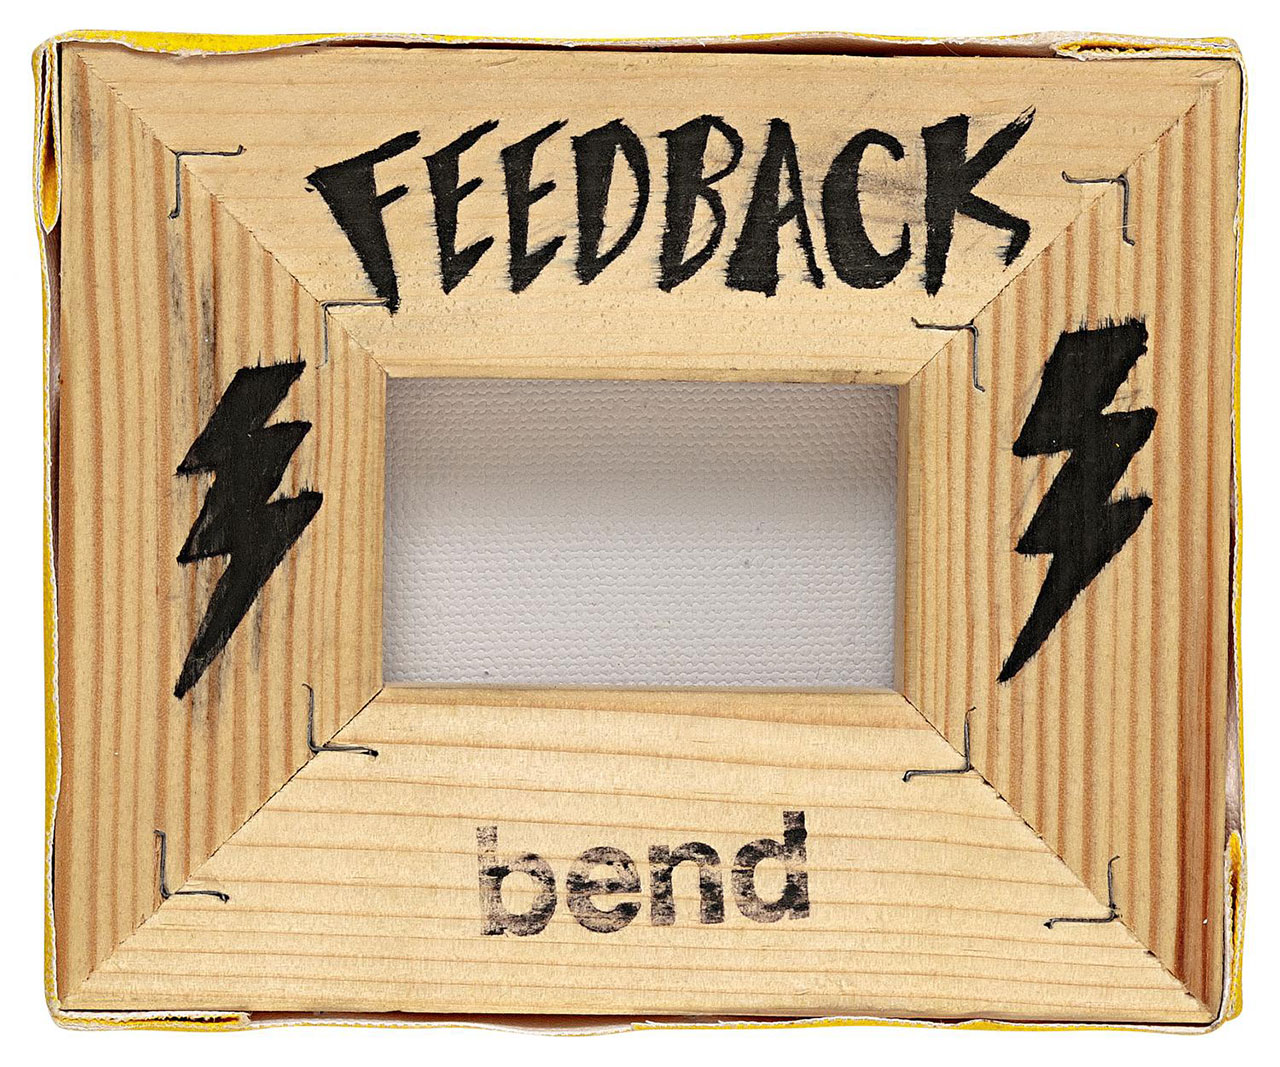 BEND FEEDBACK (back)2014, Greece.